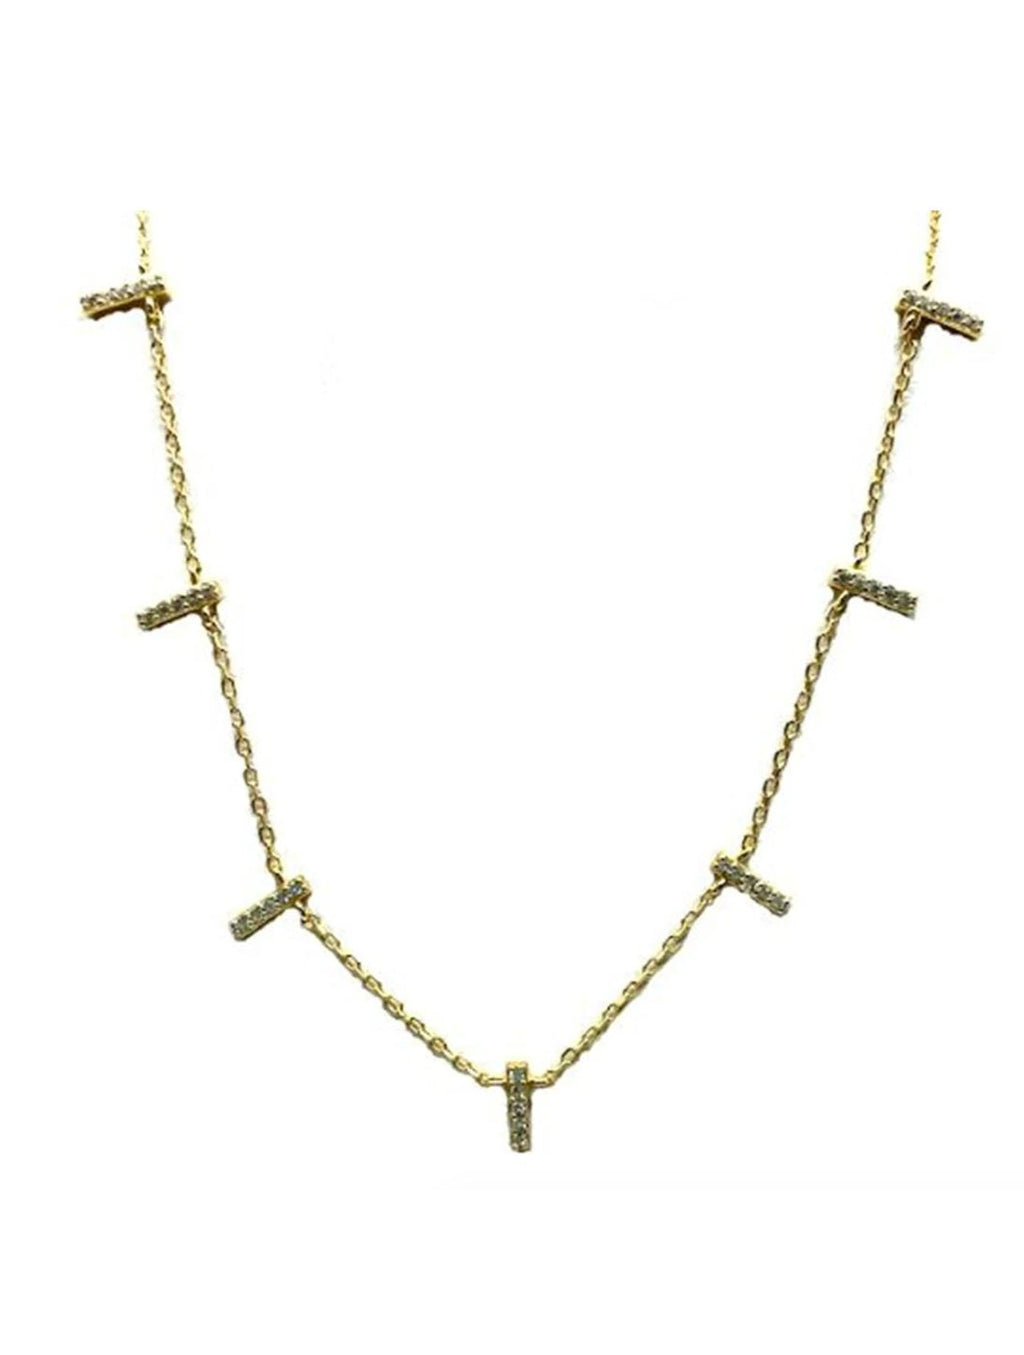 Athena Designs Pave Bars Necklace in Gold